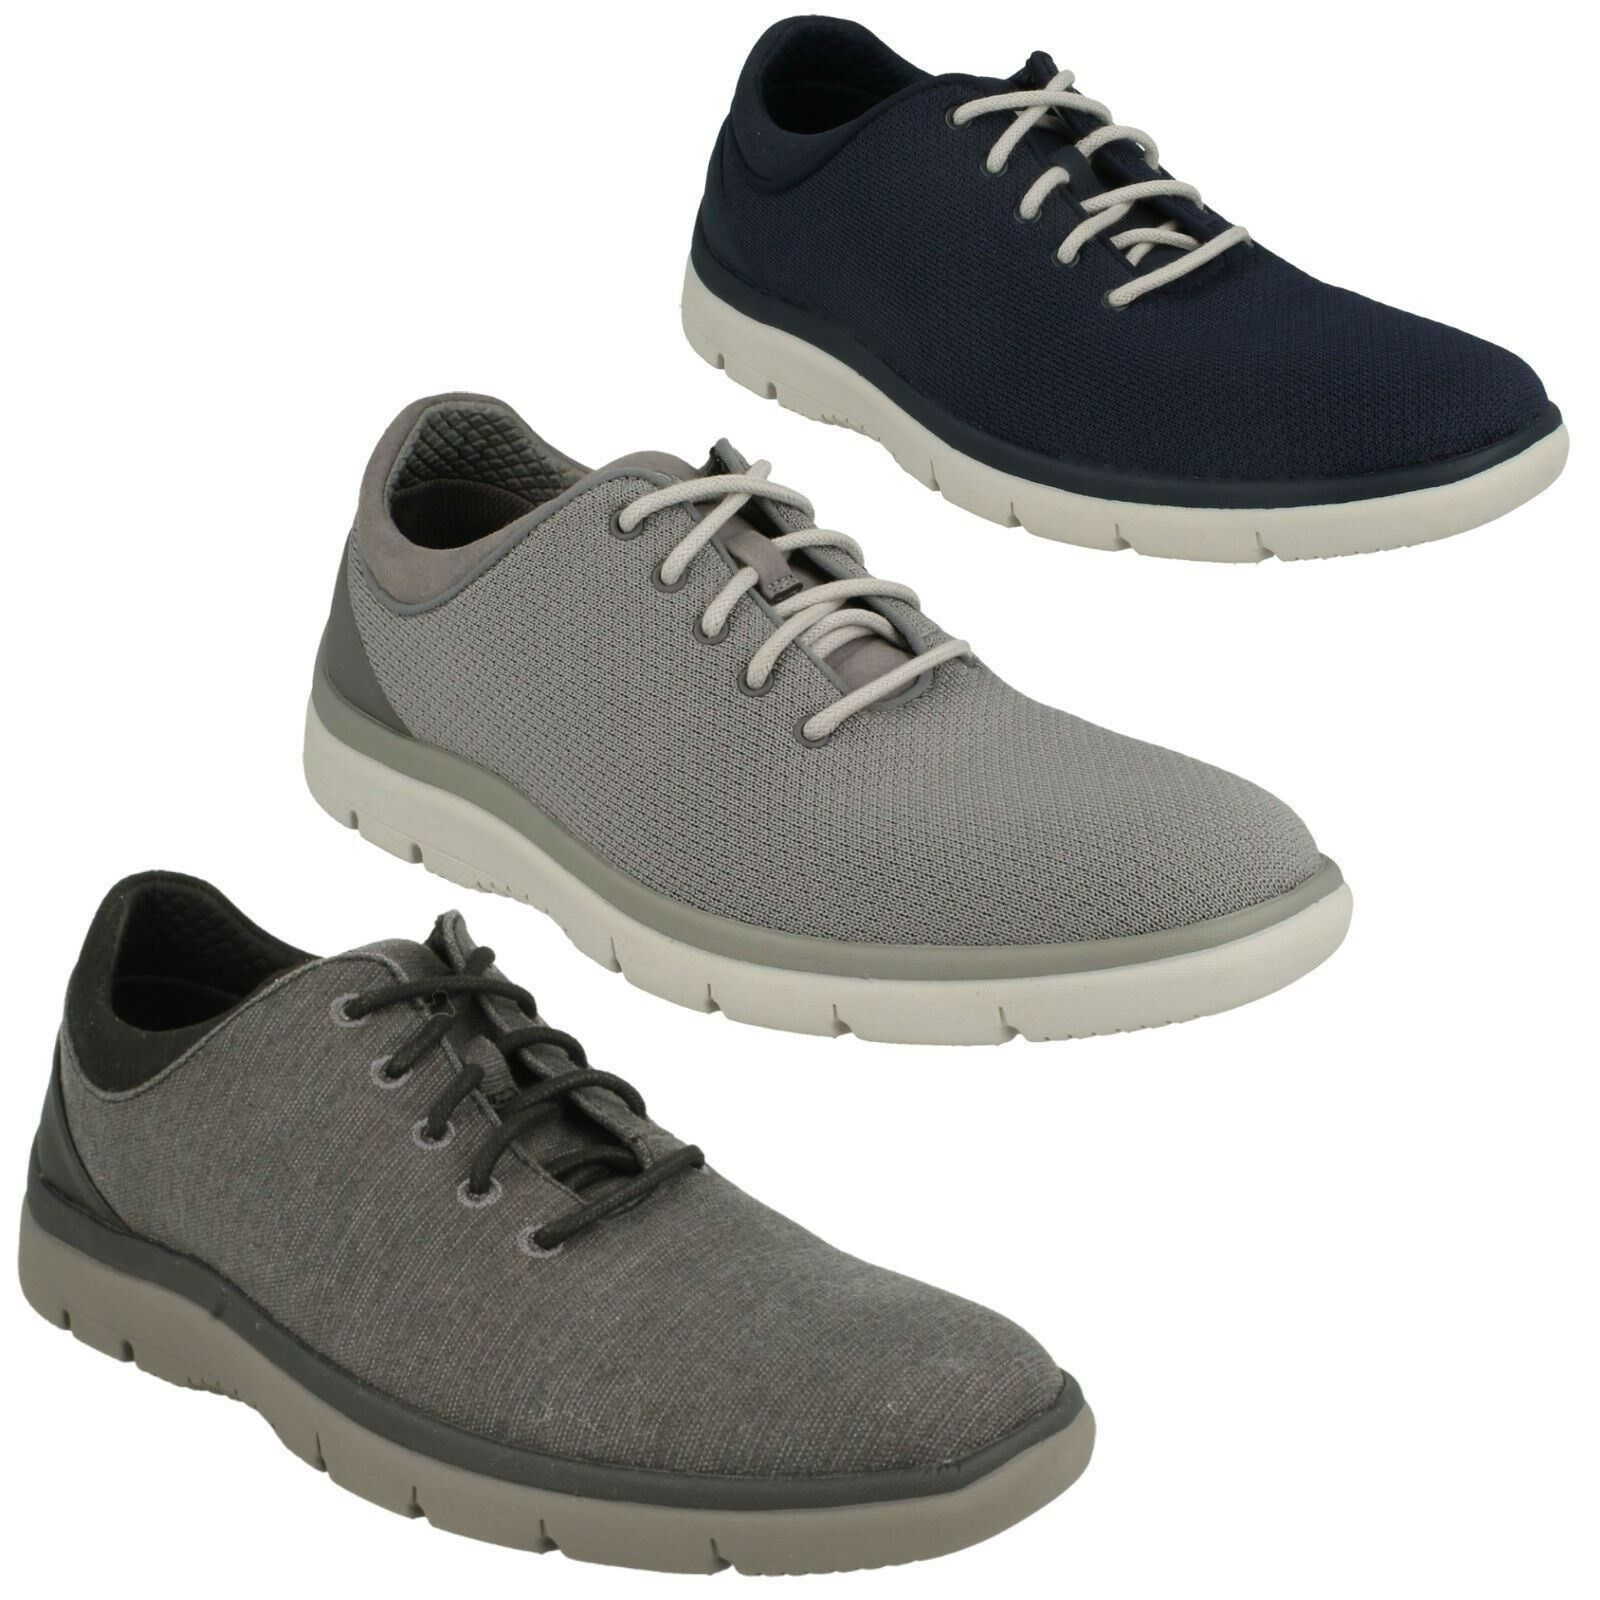 MENS CLARKS LACE UP CASUAL CLOUDSTEPPERS WALKING TRAINERS SHOES SIZE TUNSIL ACE